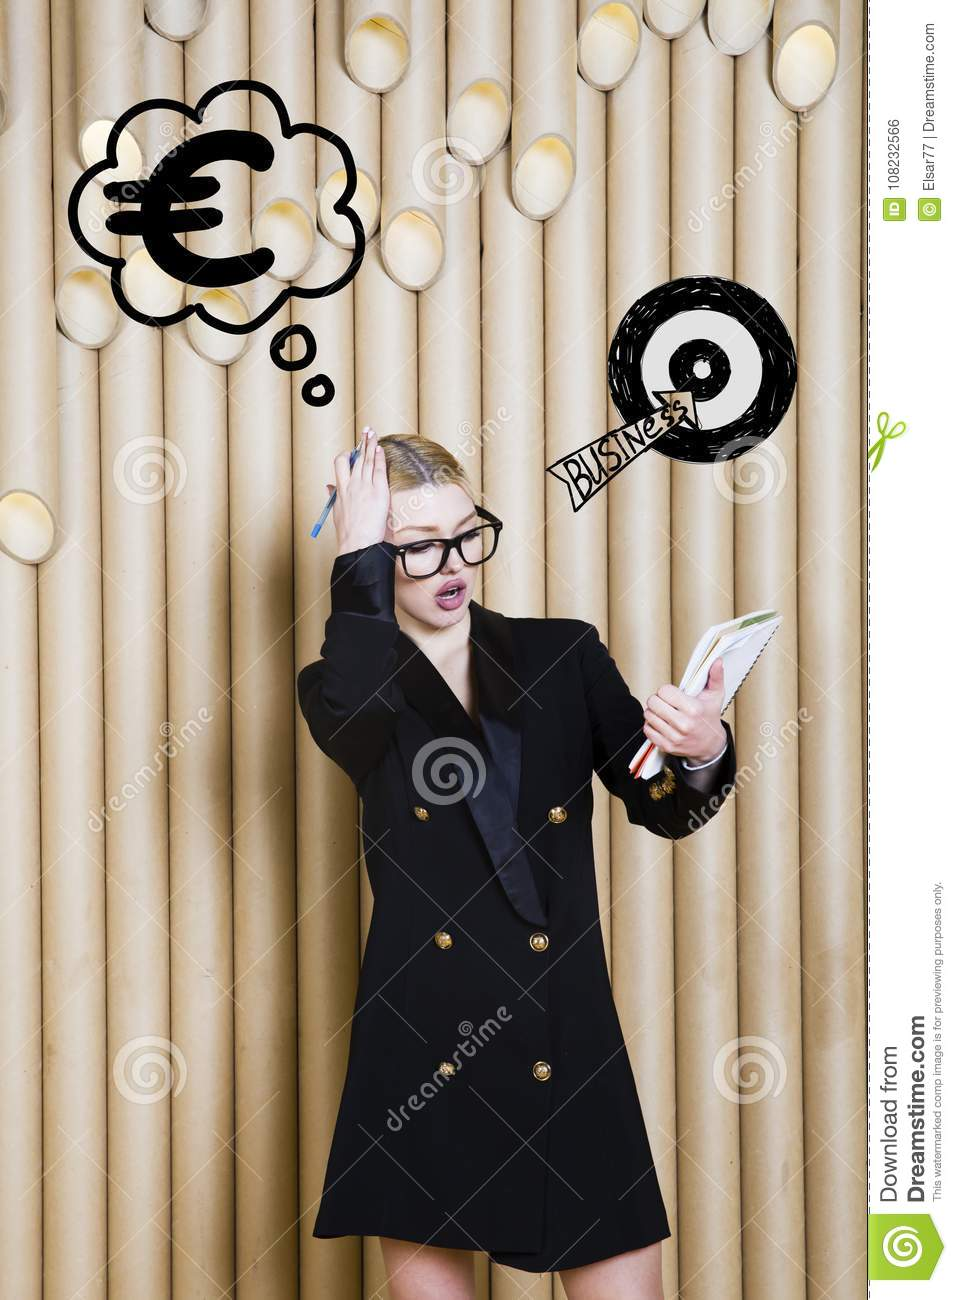 Thinking woman looking up on money sign in bubble and sketch target. Money concept on design background with lamps.